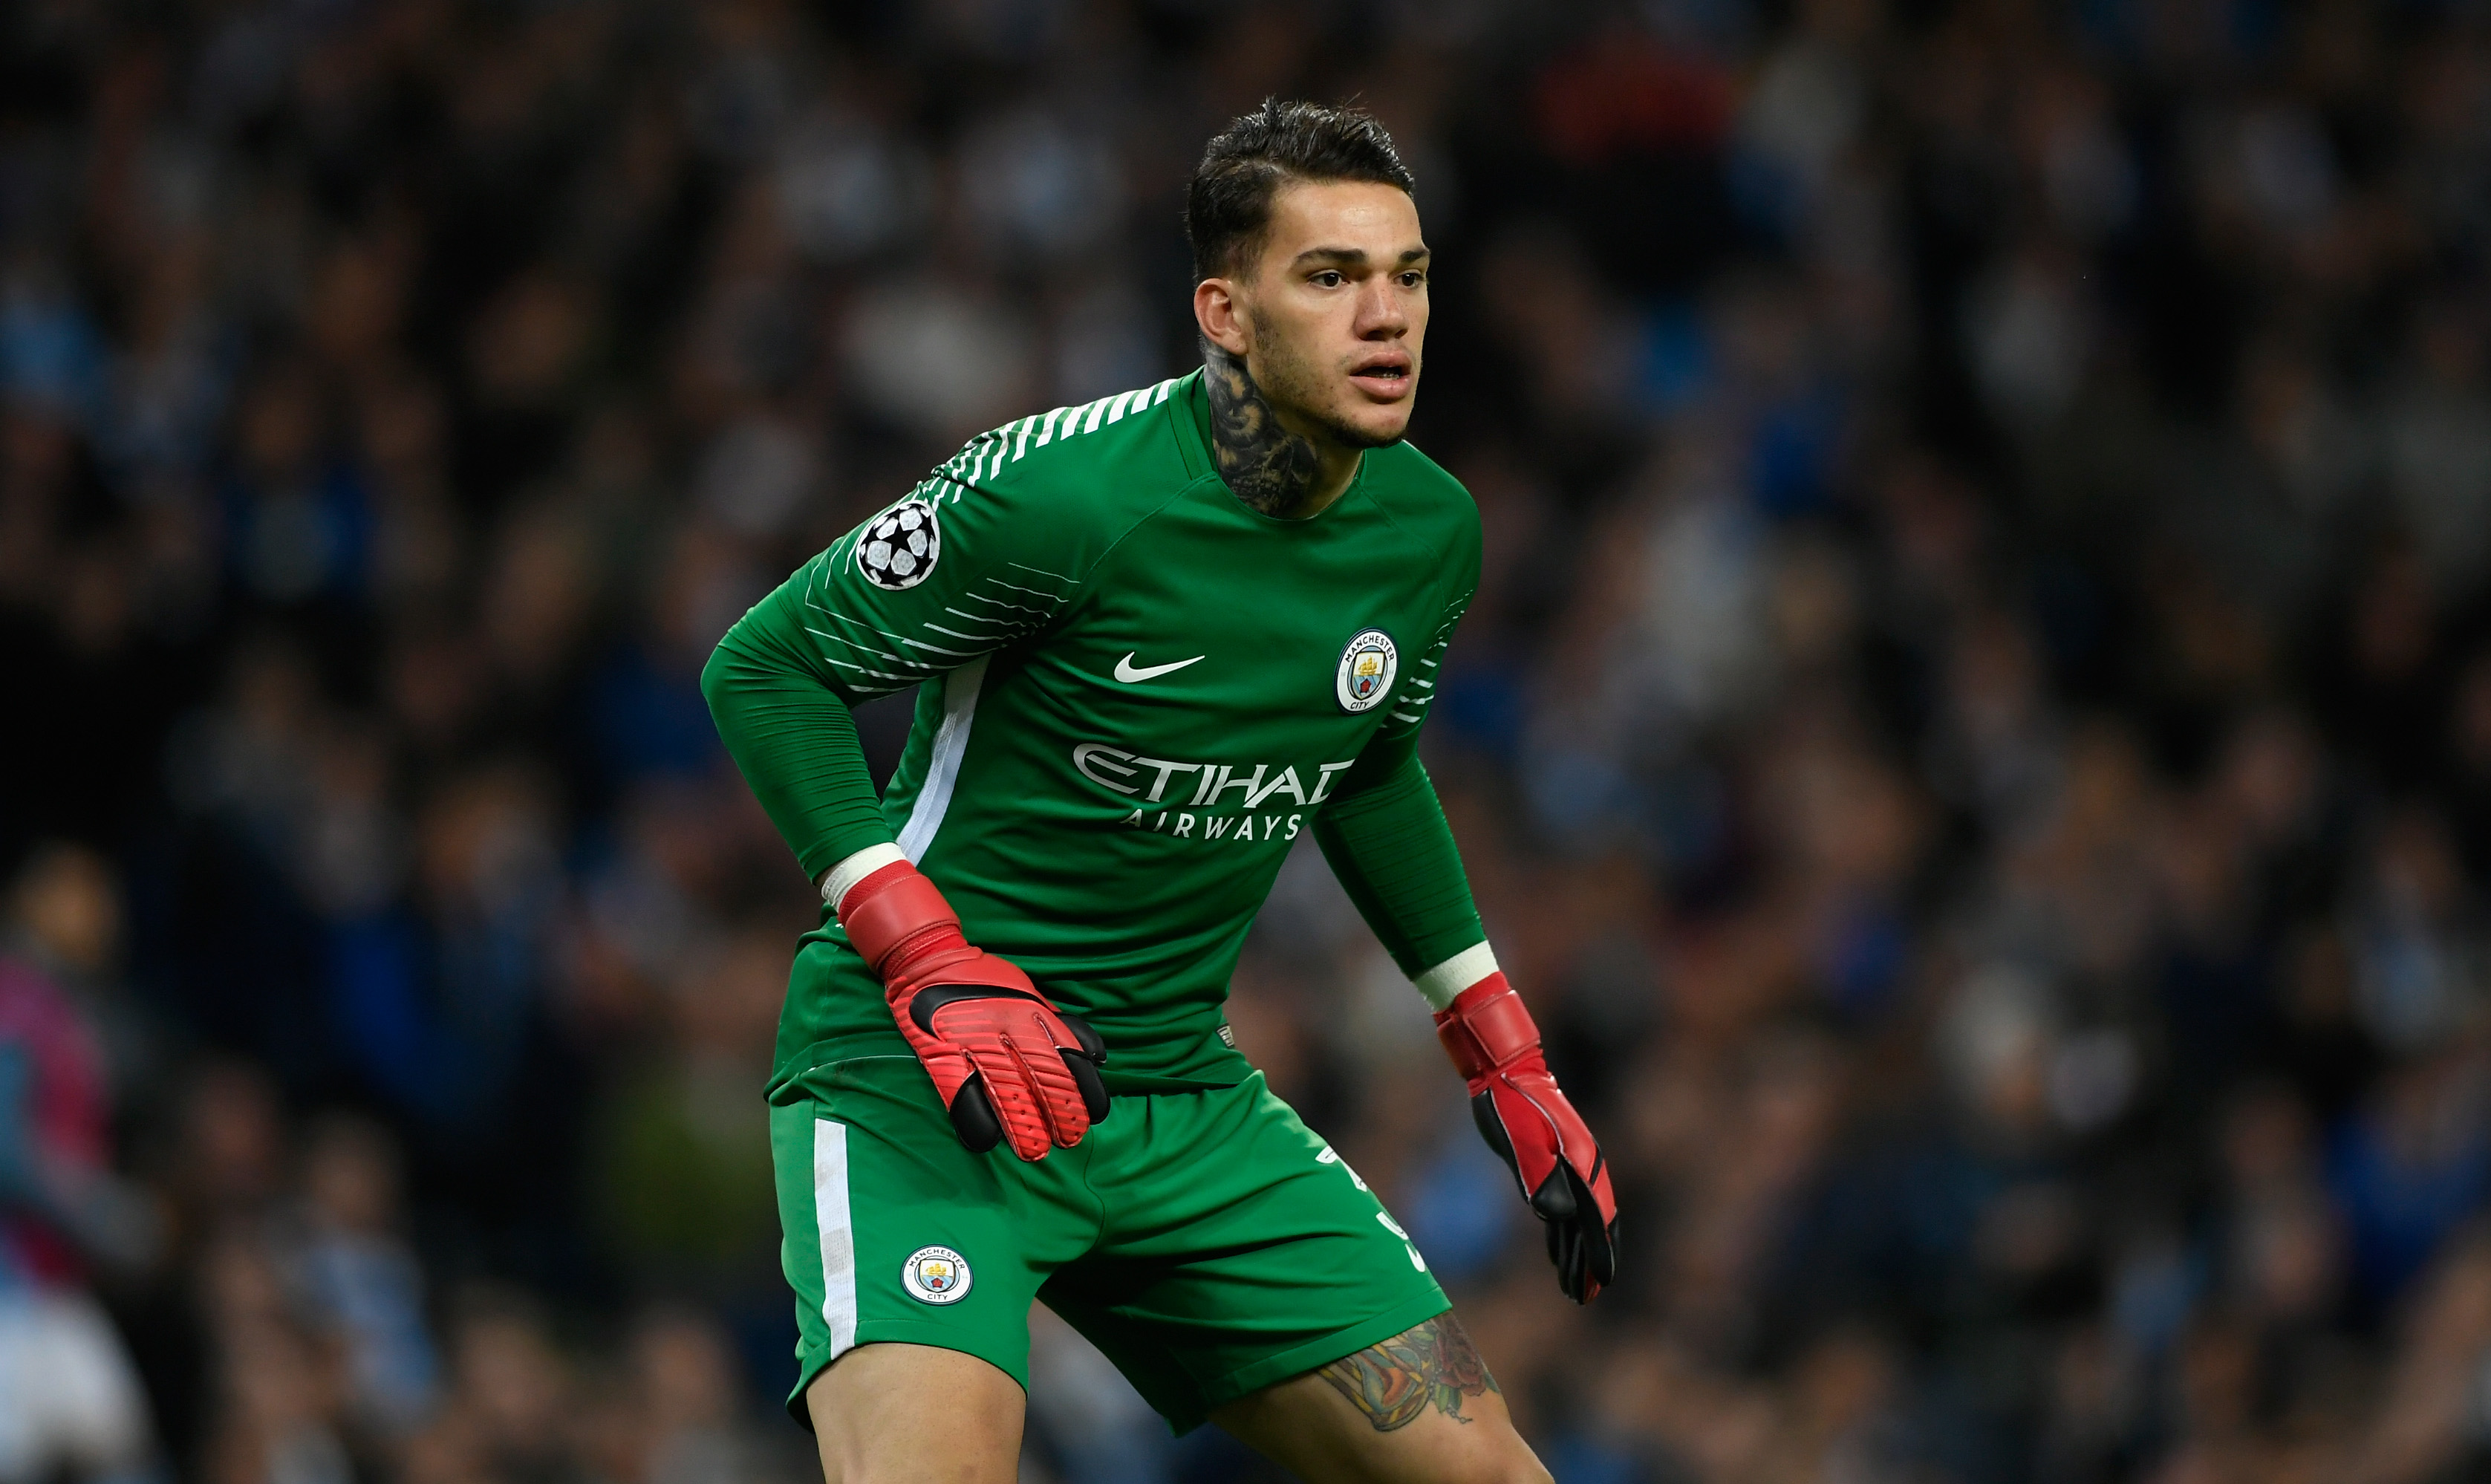 Manchester City: Player Ratings After Matchday 9